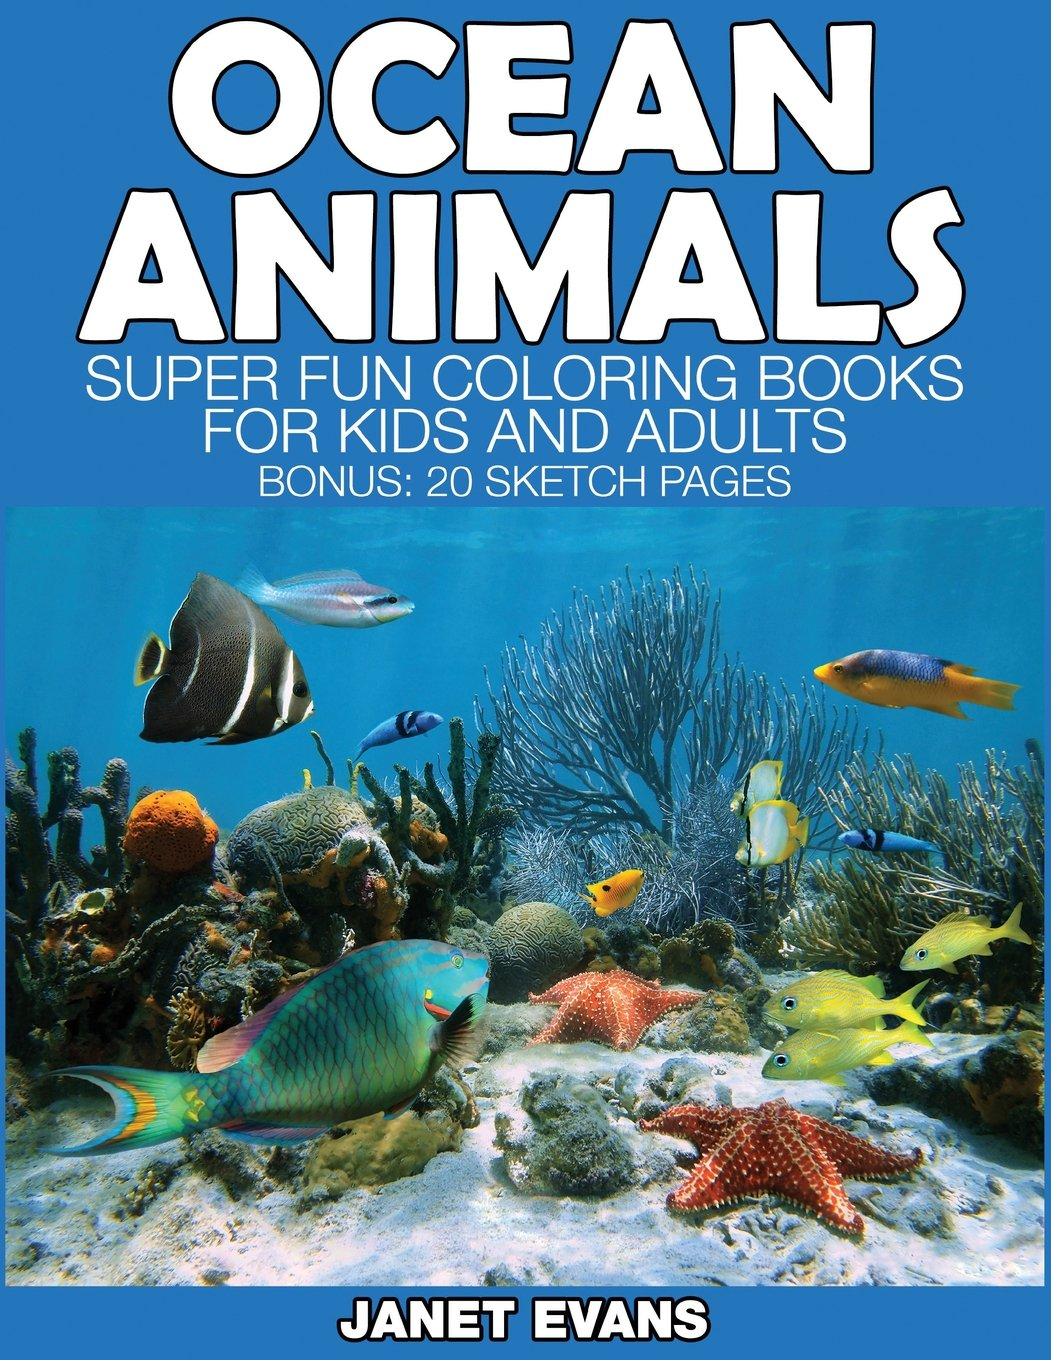 Ocean Animals: Super Fun Coloring Books for Kids and Adults (Bonus: 20 Sketch Pages) ebook